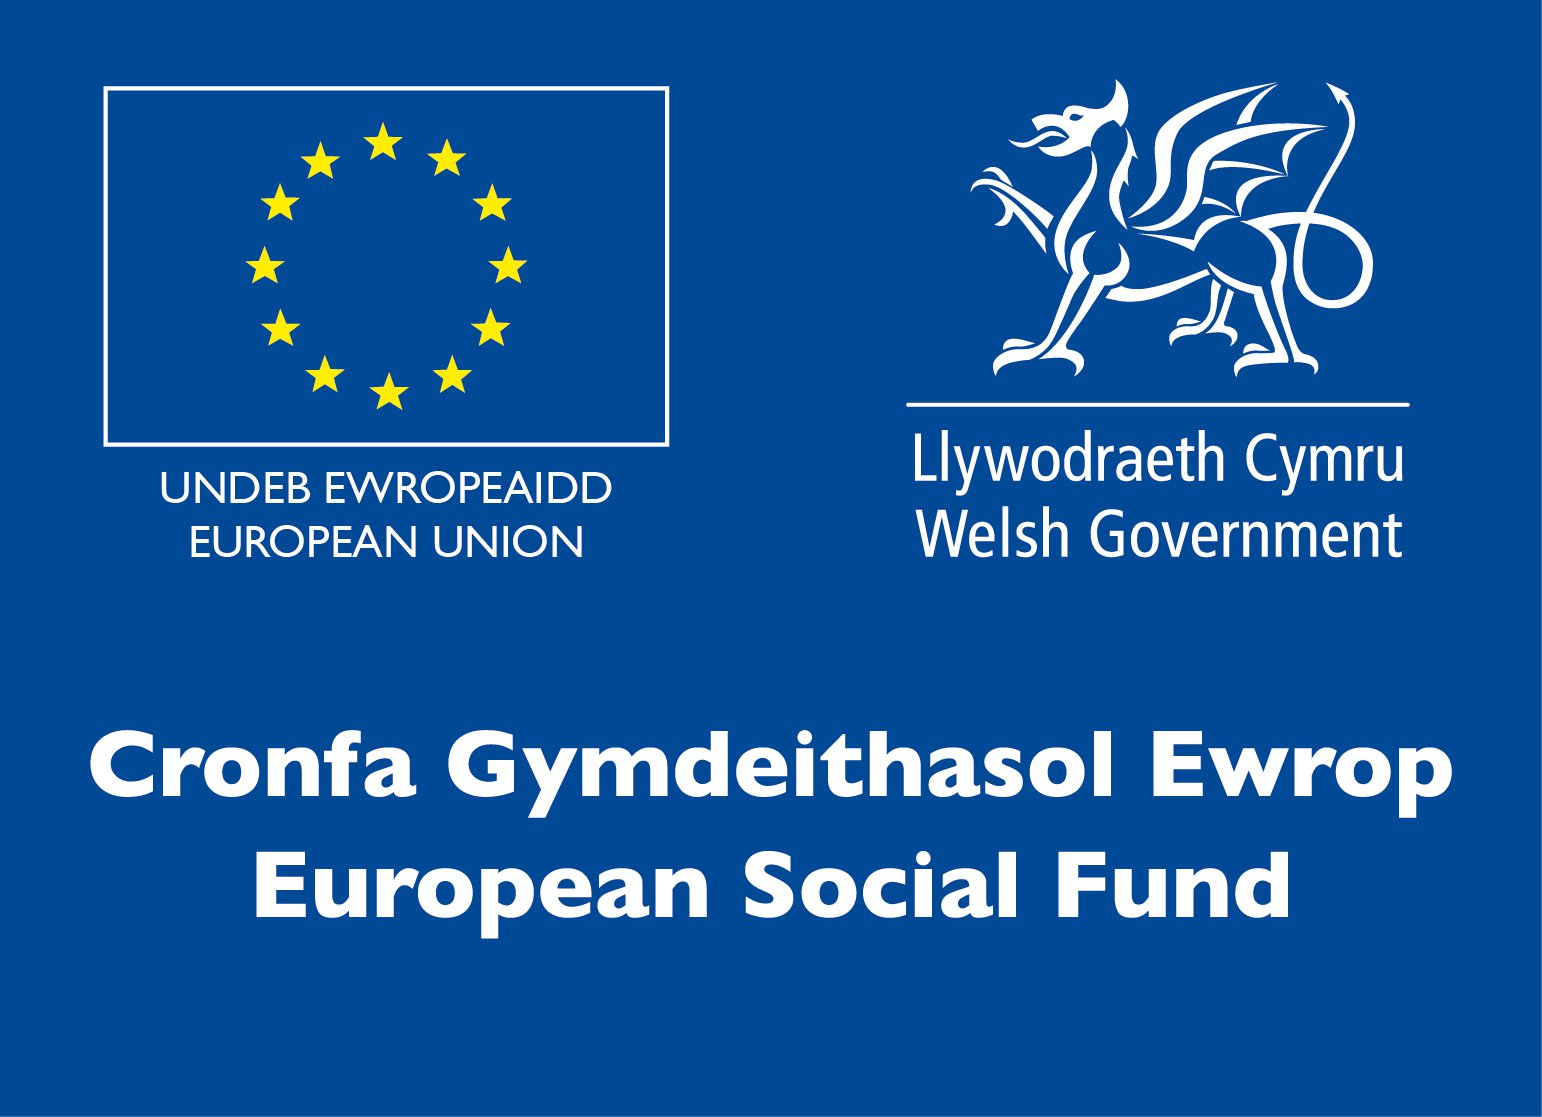 European Social Fund through Welsh Government